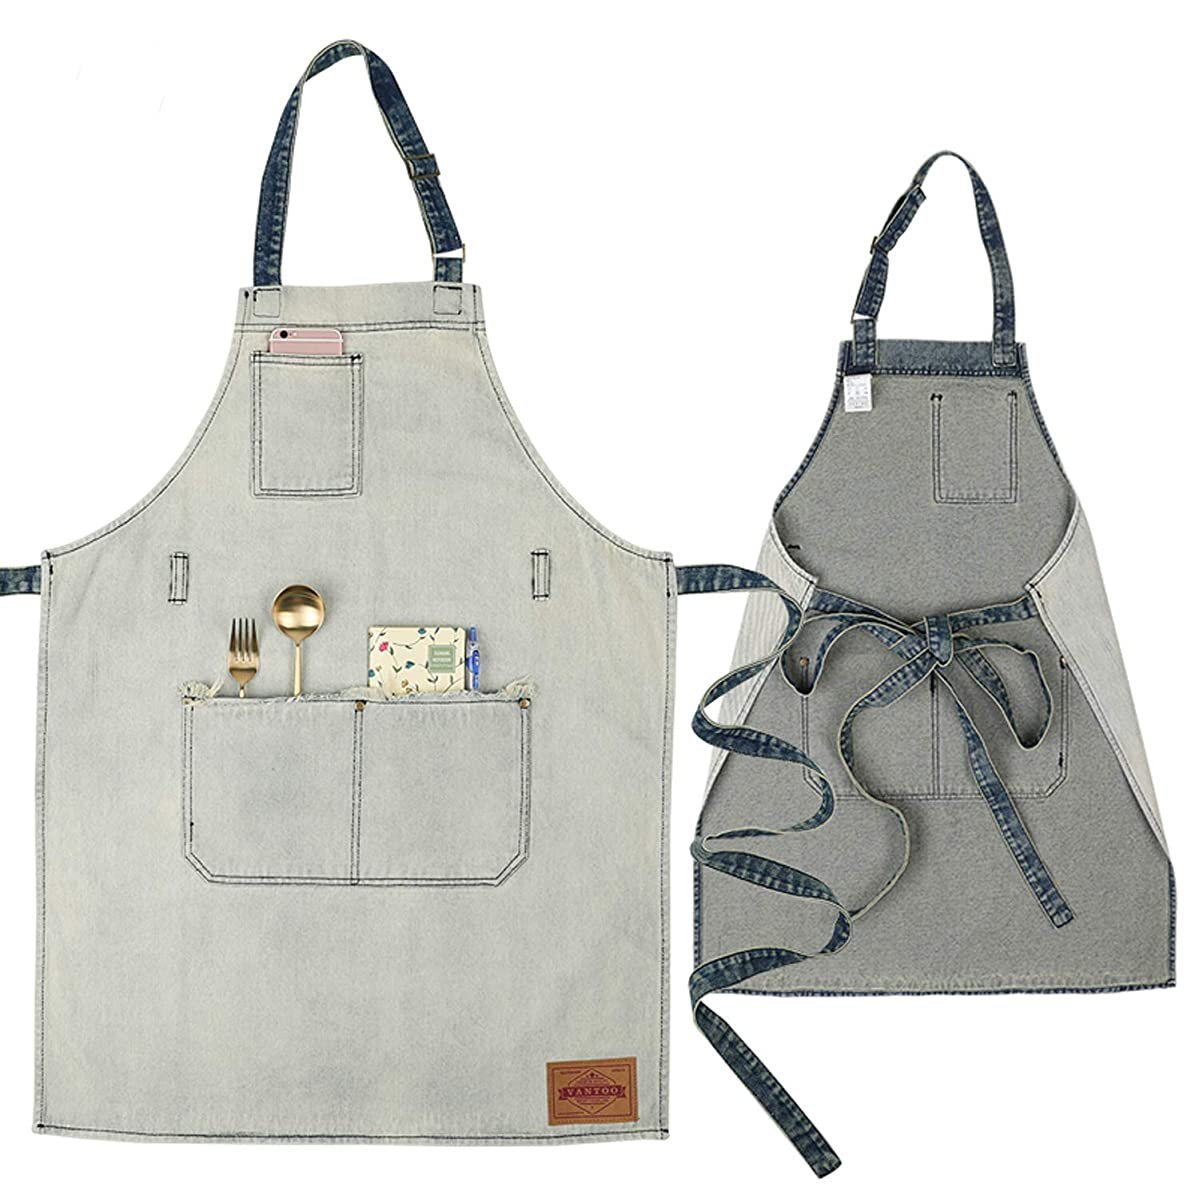 VANTOO Denim Artist Apron with 3 Pockets for Men Women-Jean Painting Salon Apron-Adjustable Neck Strap-Extra Long Ties for Friends Families,White